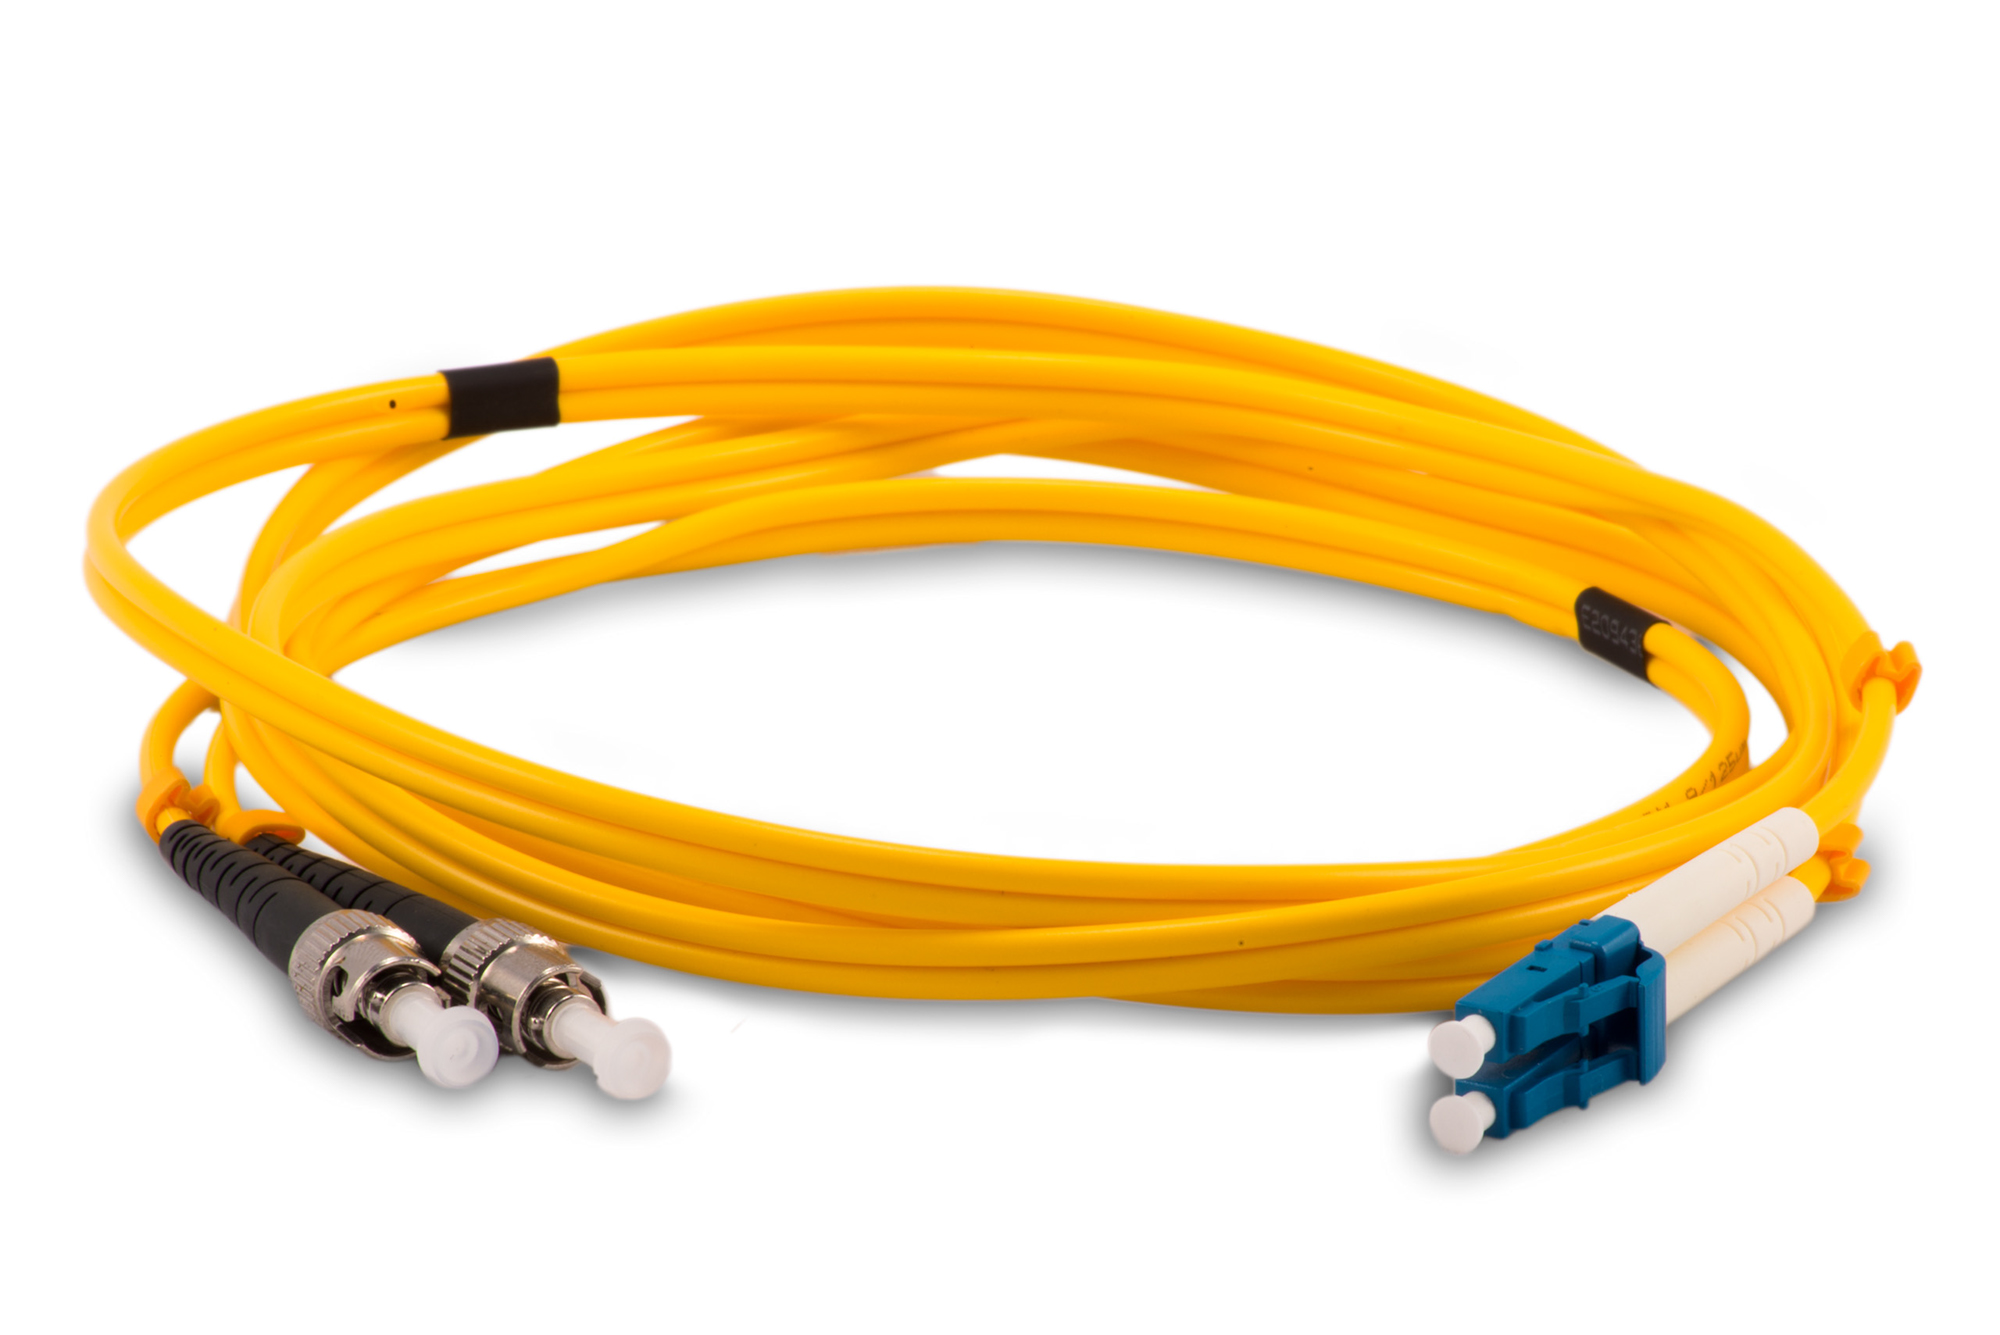 OS1 Single Mode Fiber Optic Cables - OS1 Cables with LC, SC, ST and